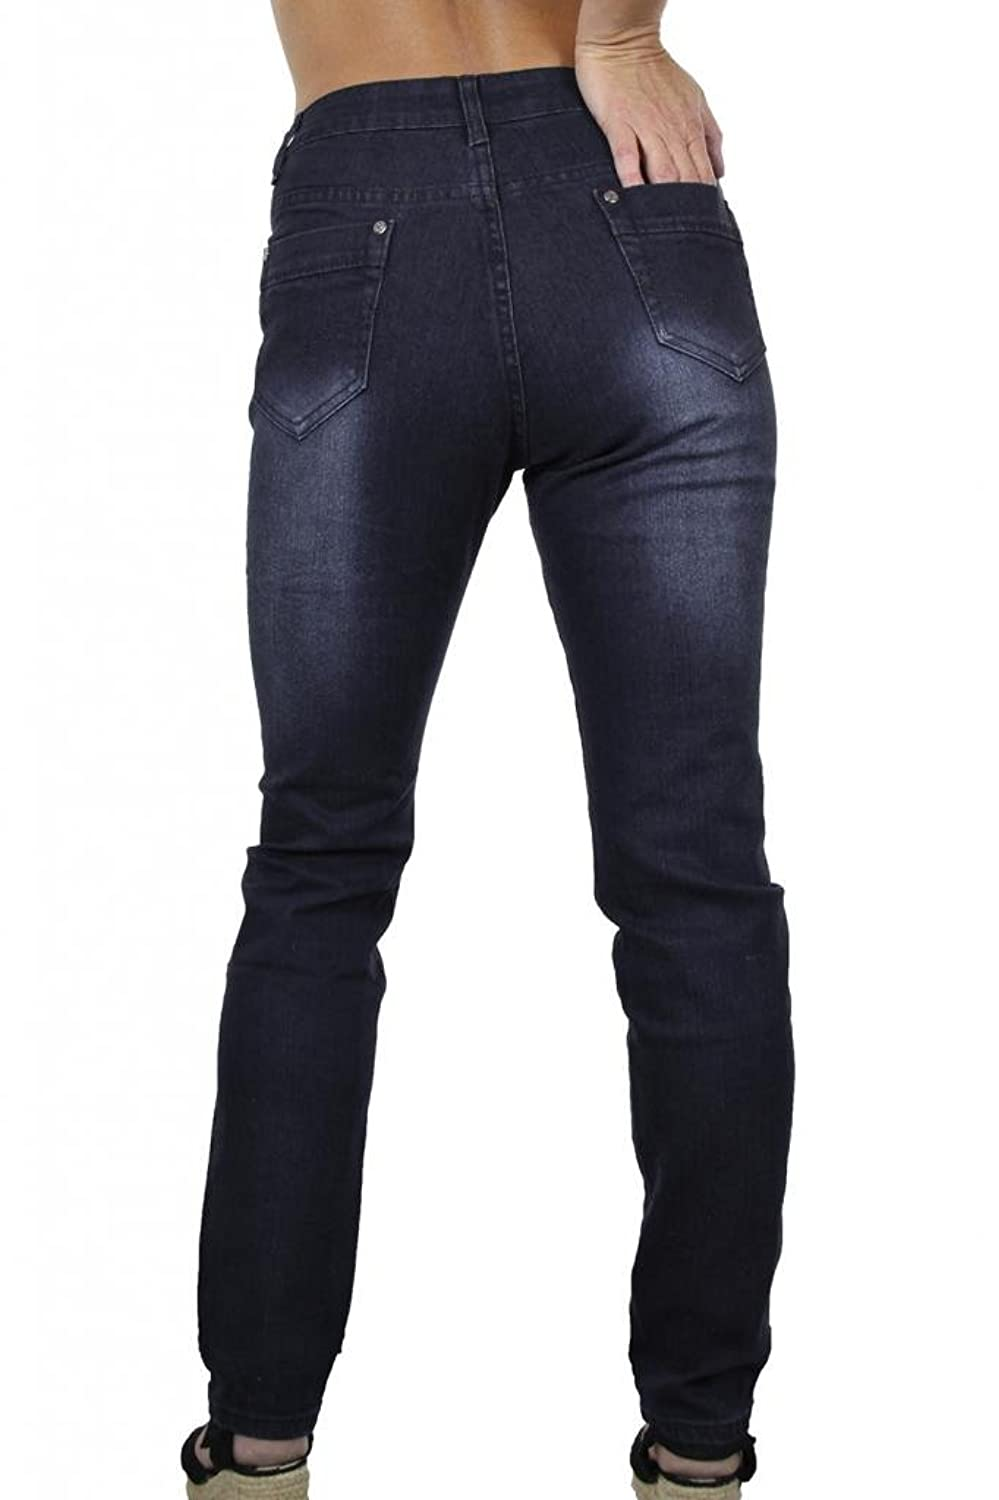 (1353) Plus Size Stretch Jeans Dark Indigo Blue Denim Fade Legs